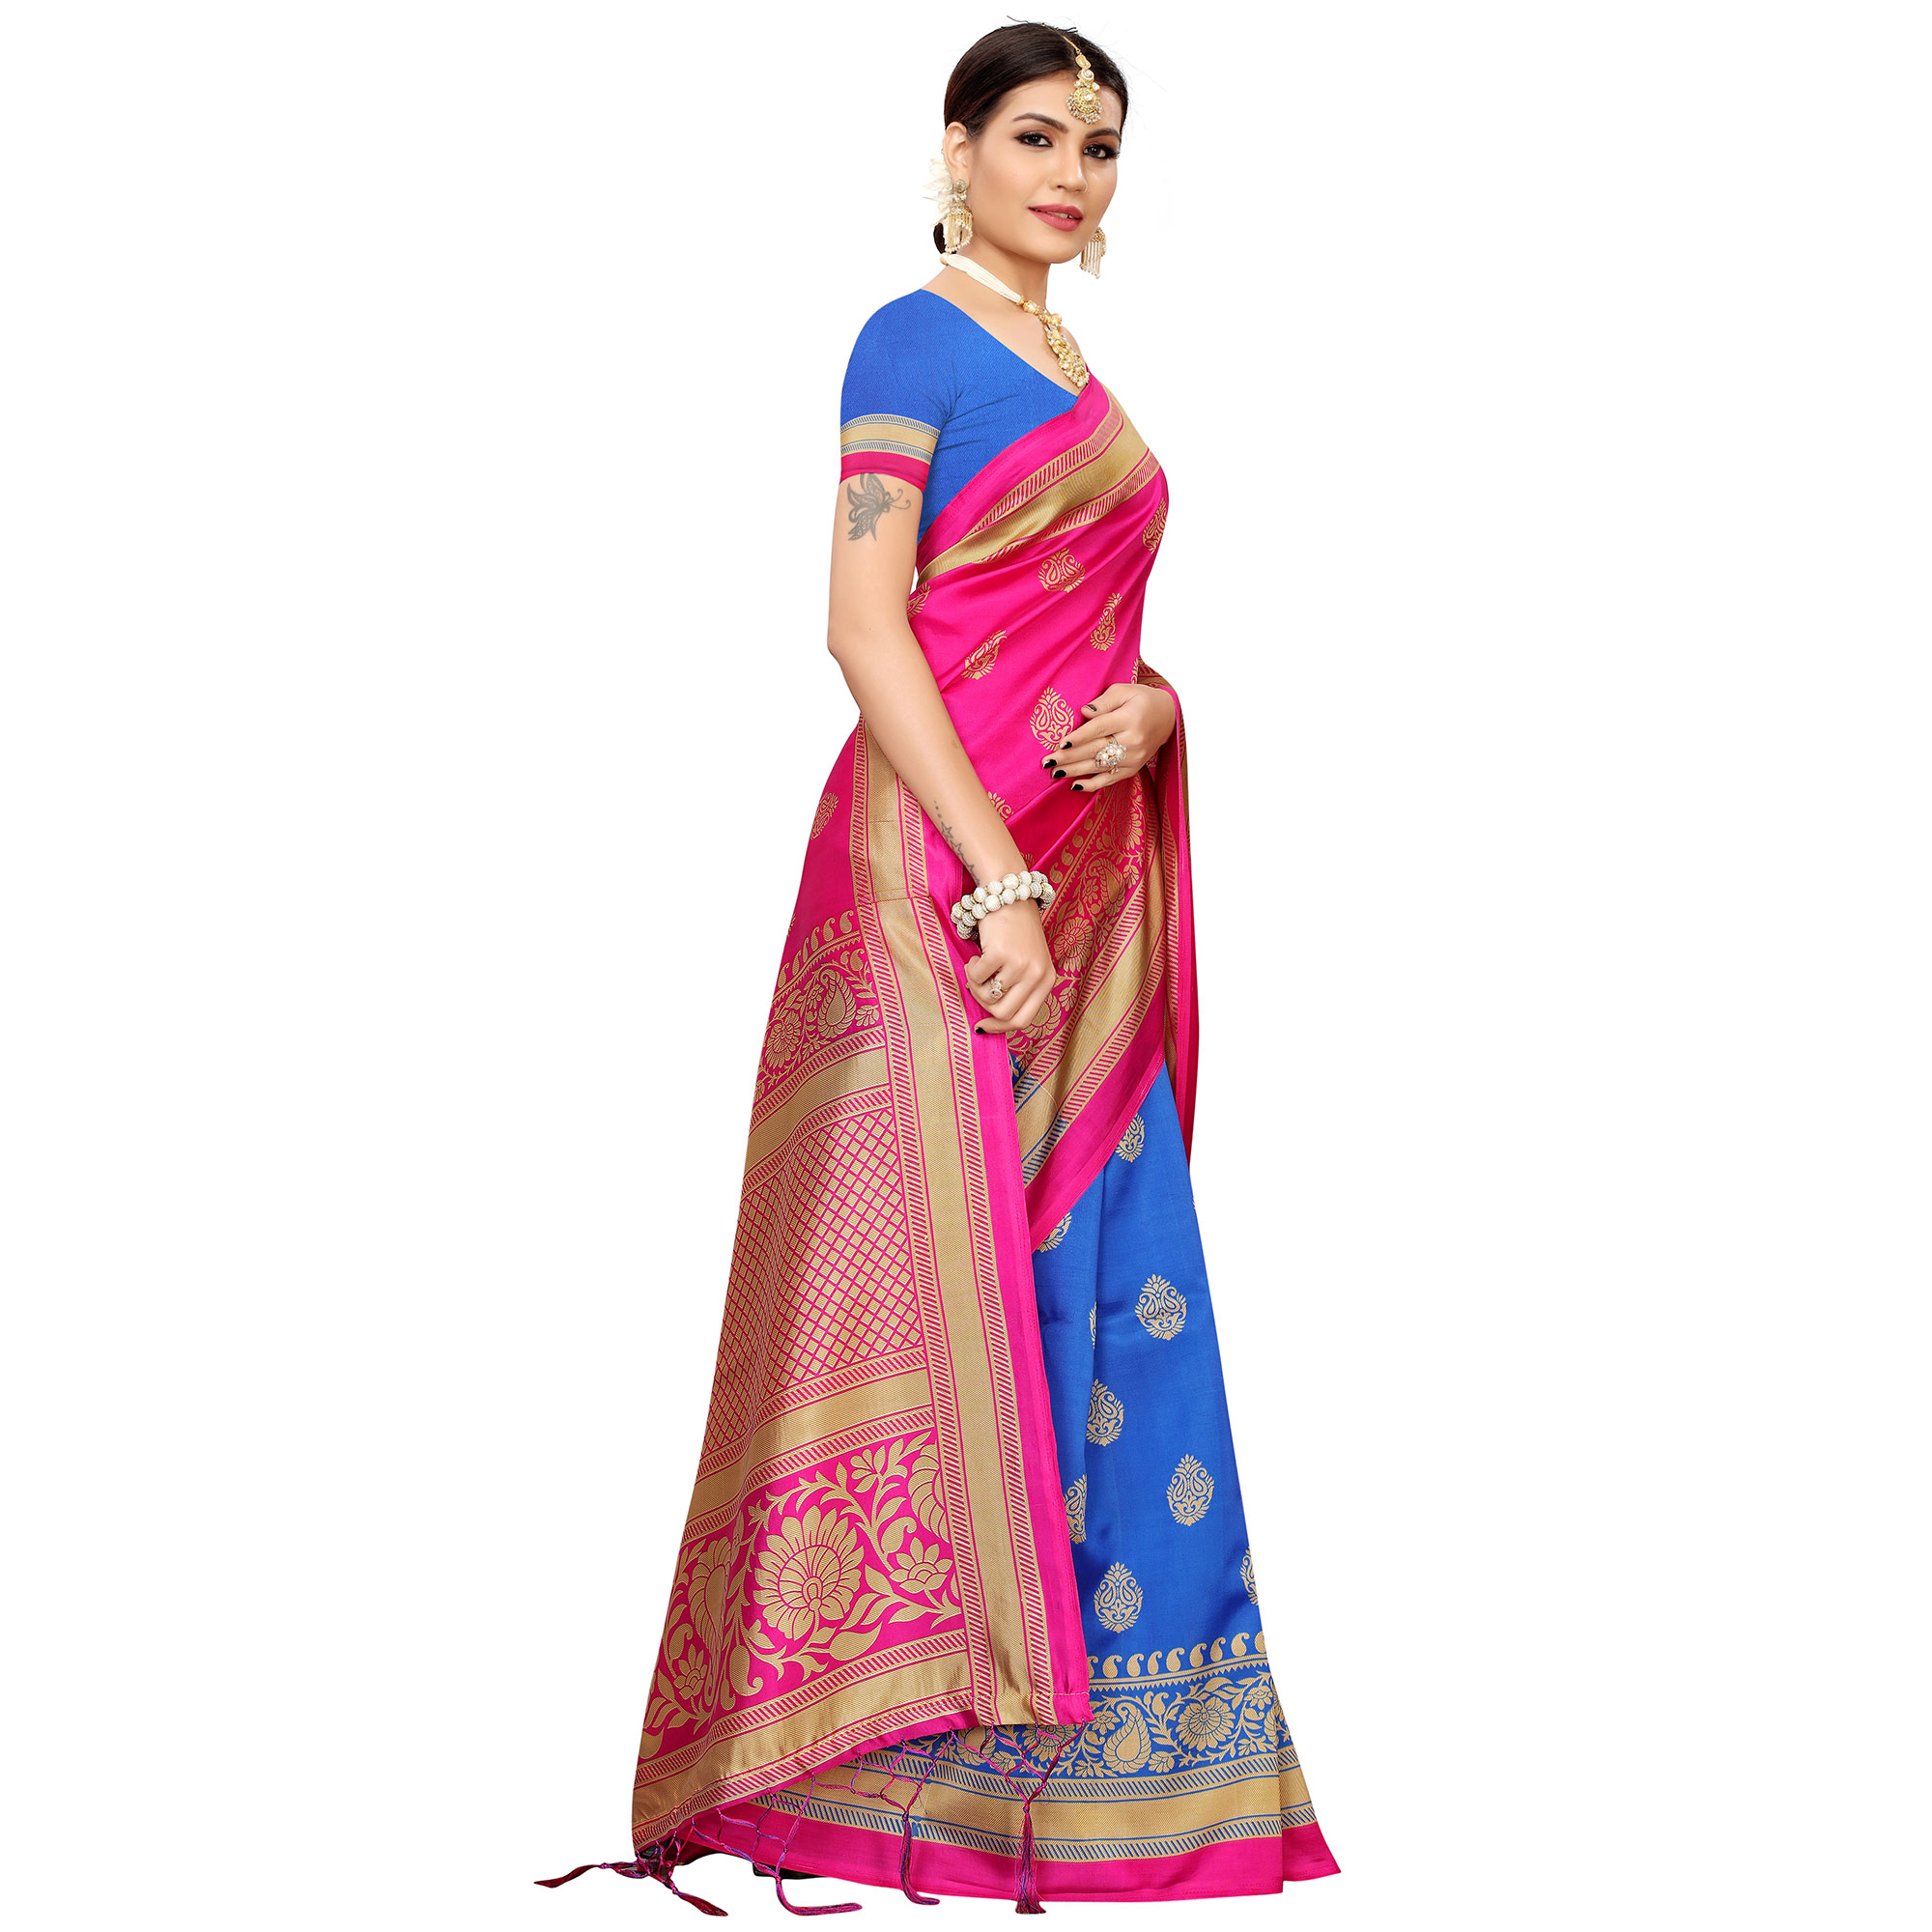 Majesty Blue-Pink Colored Festive Wear Banarasi Art Silk Saree